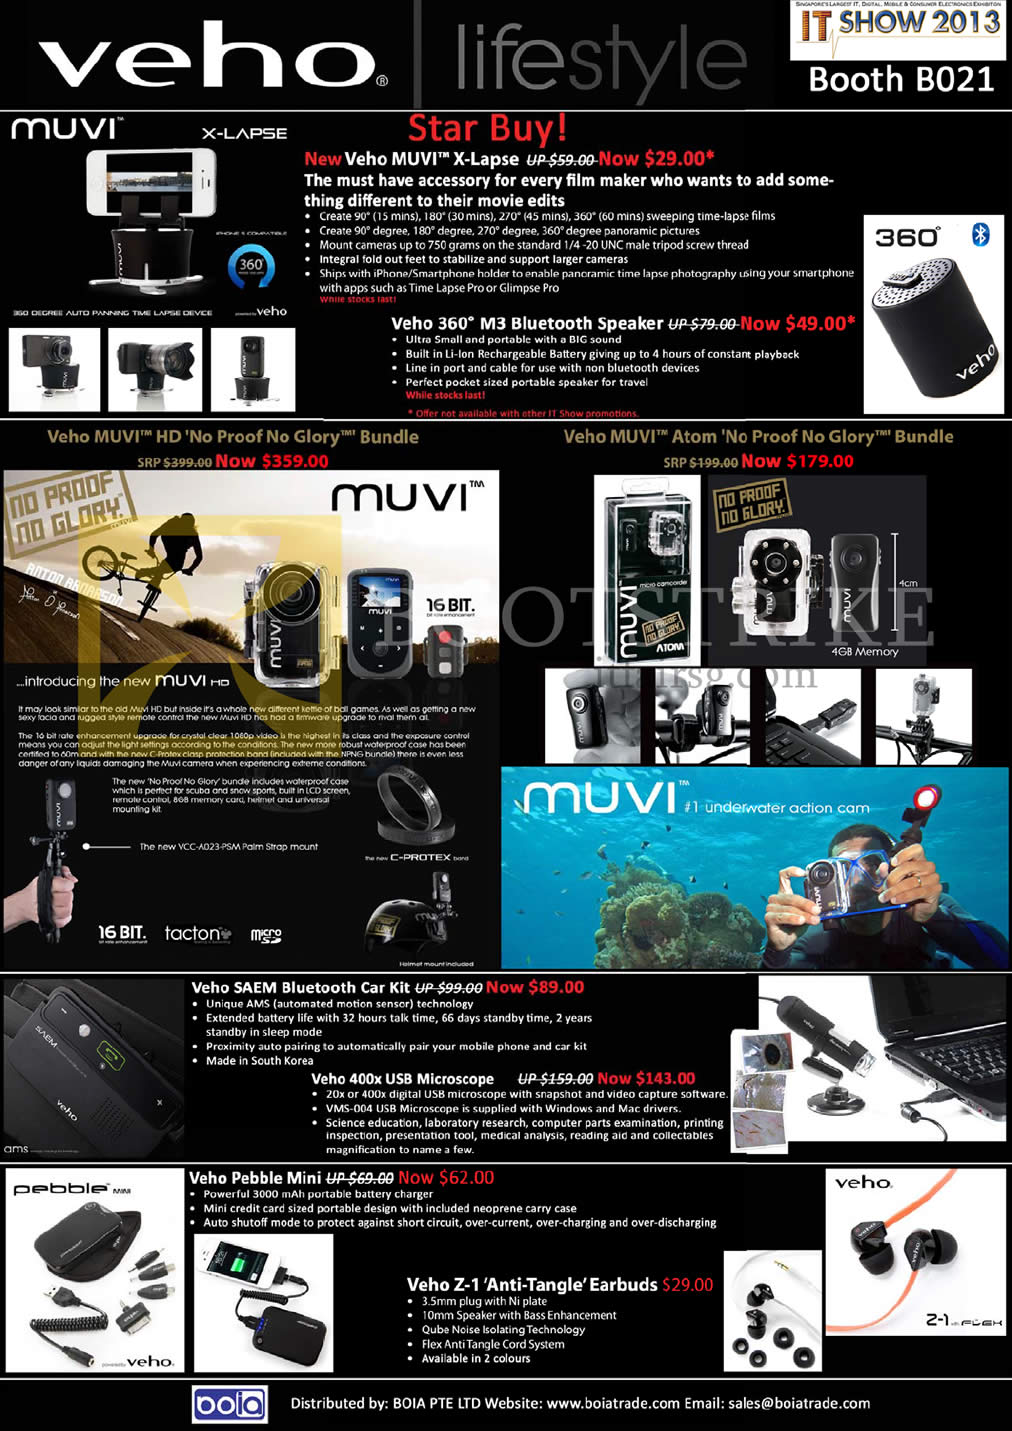 IT SHOW 2013 price list image brochure of Mojito Boia Veho Muvi X-Lapse, 360 M3 Bluetooth Wireless Speaker, Muvi HD, Muvi Atom, Saem, 400x USB Microscope, Pebble Mini, Z-1 Earphones